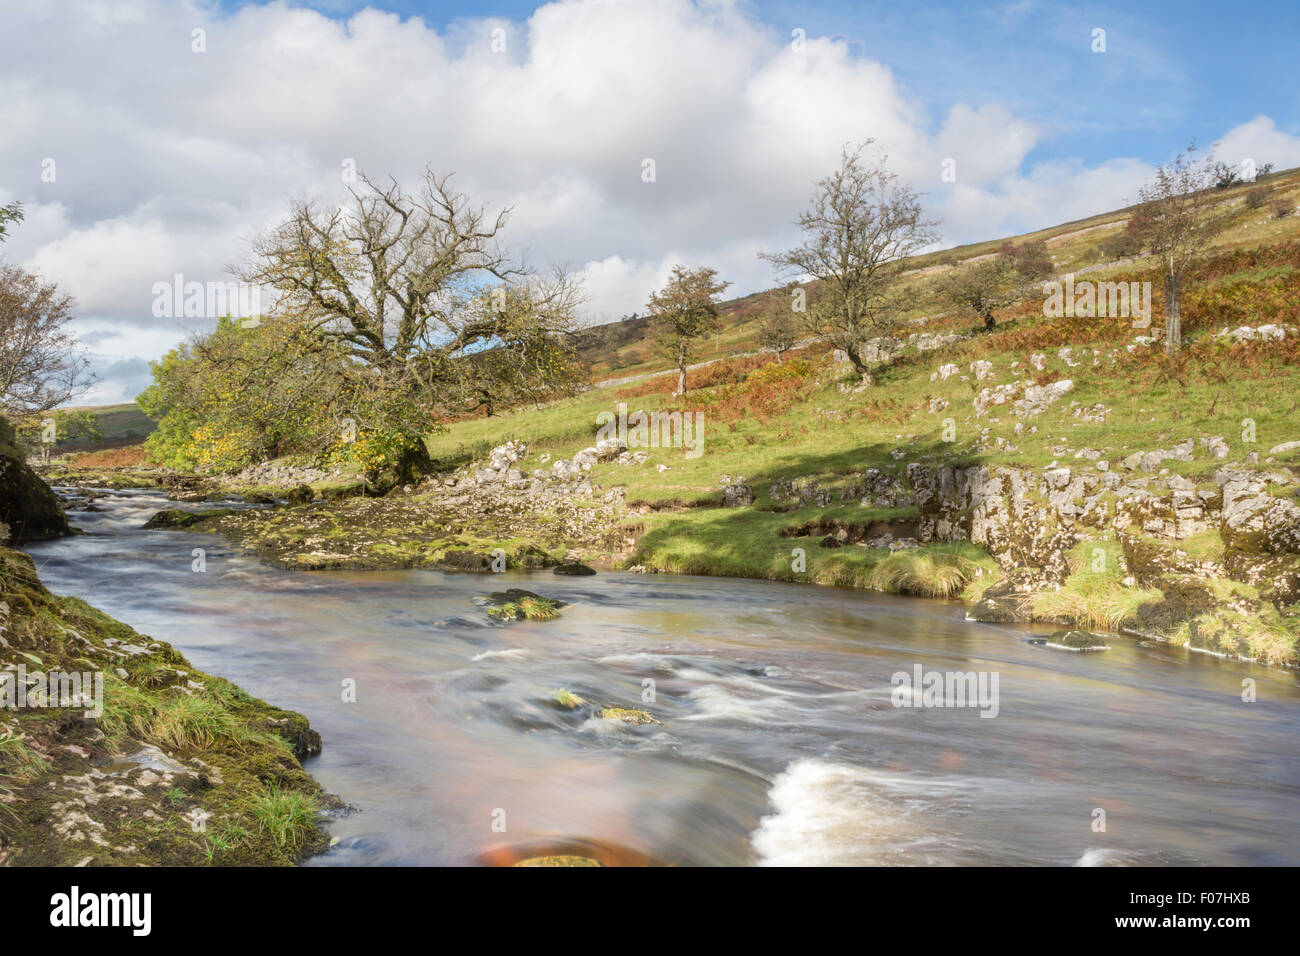 Autumn on the River Wharf, Upper Wharfdale, Yorkshire Dales National Park - Stock Image